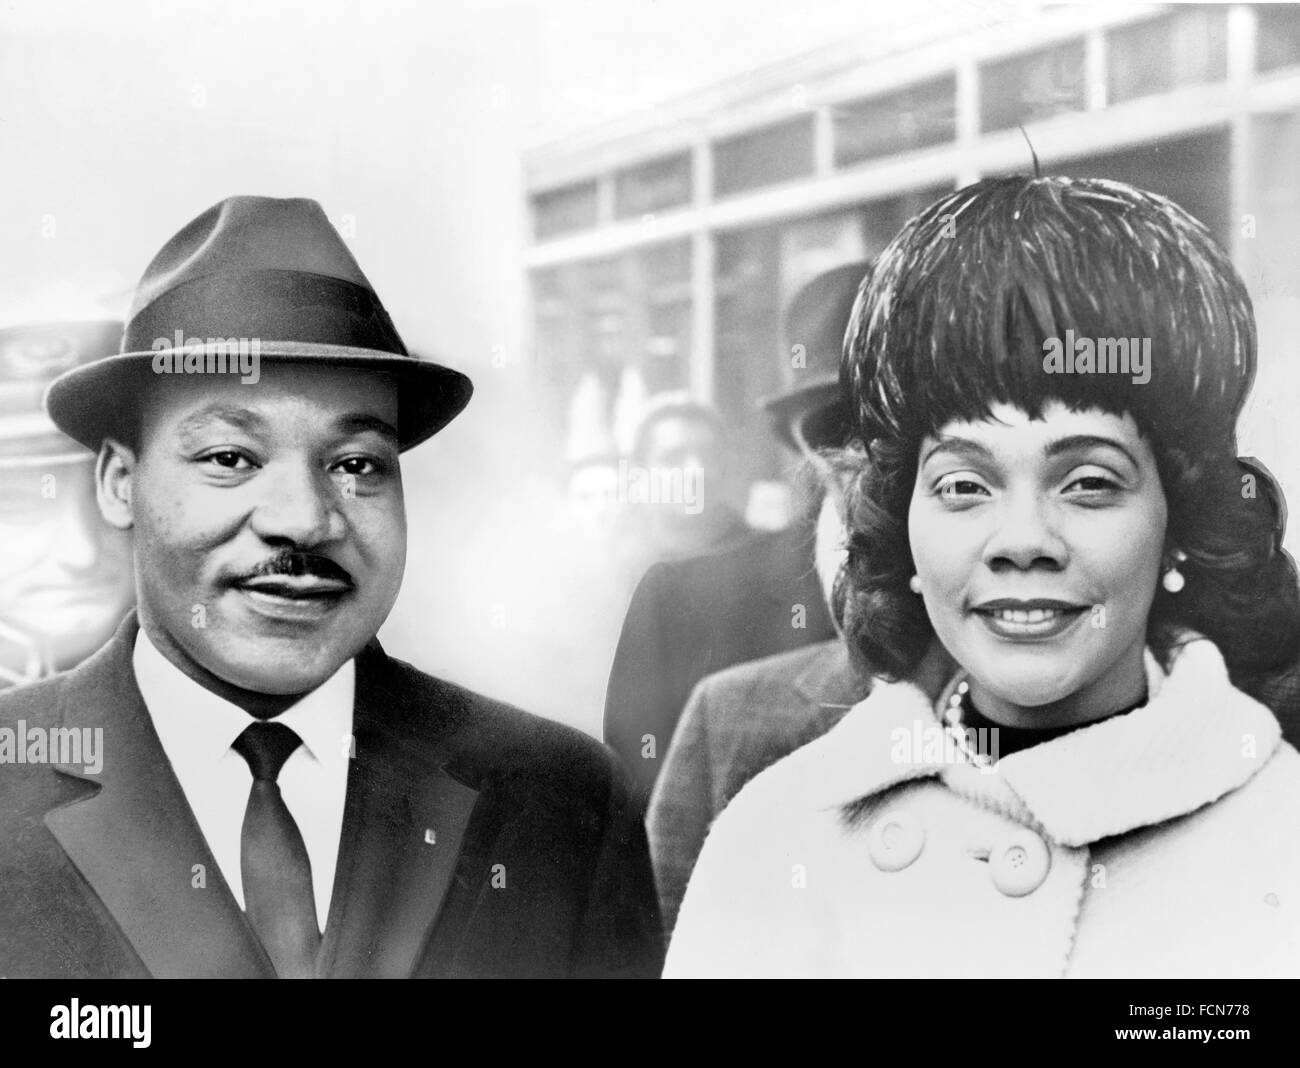 Dr Martin Luther King Jr with his wife, Coretta Scott King, 1964. Taken from a photographic print that was heavily - Stock Image